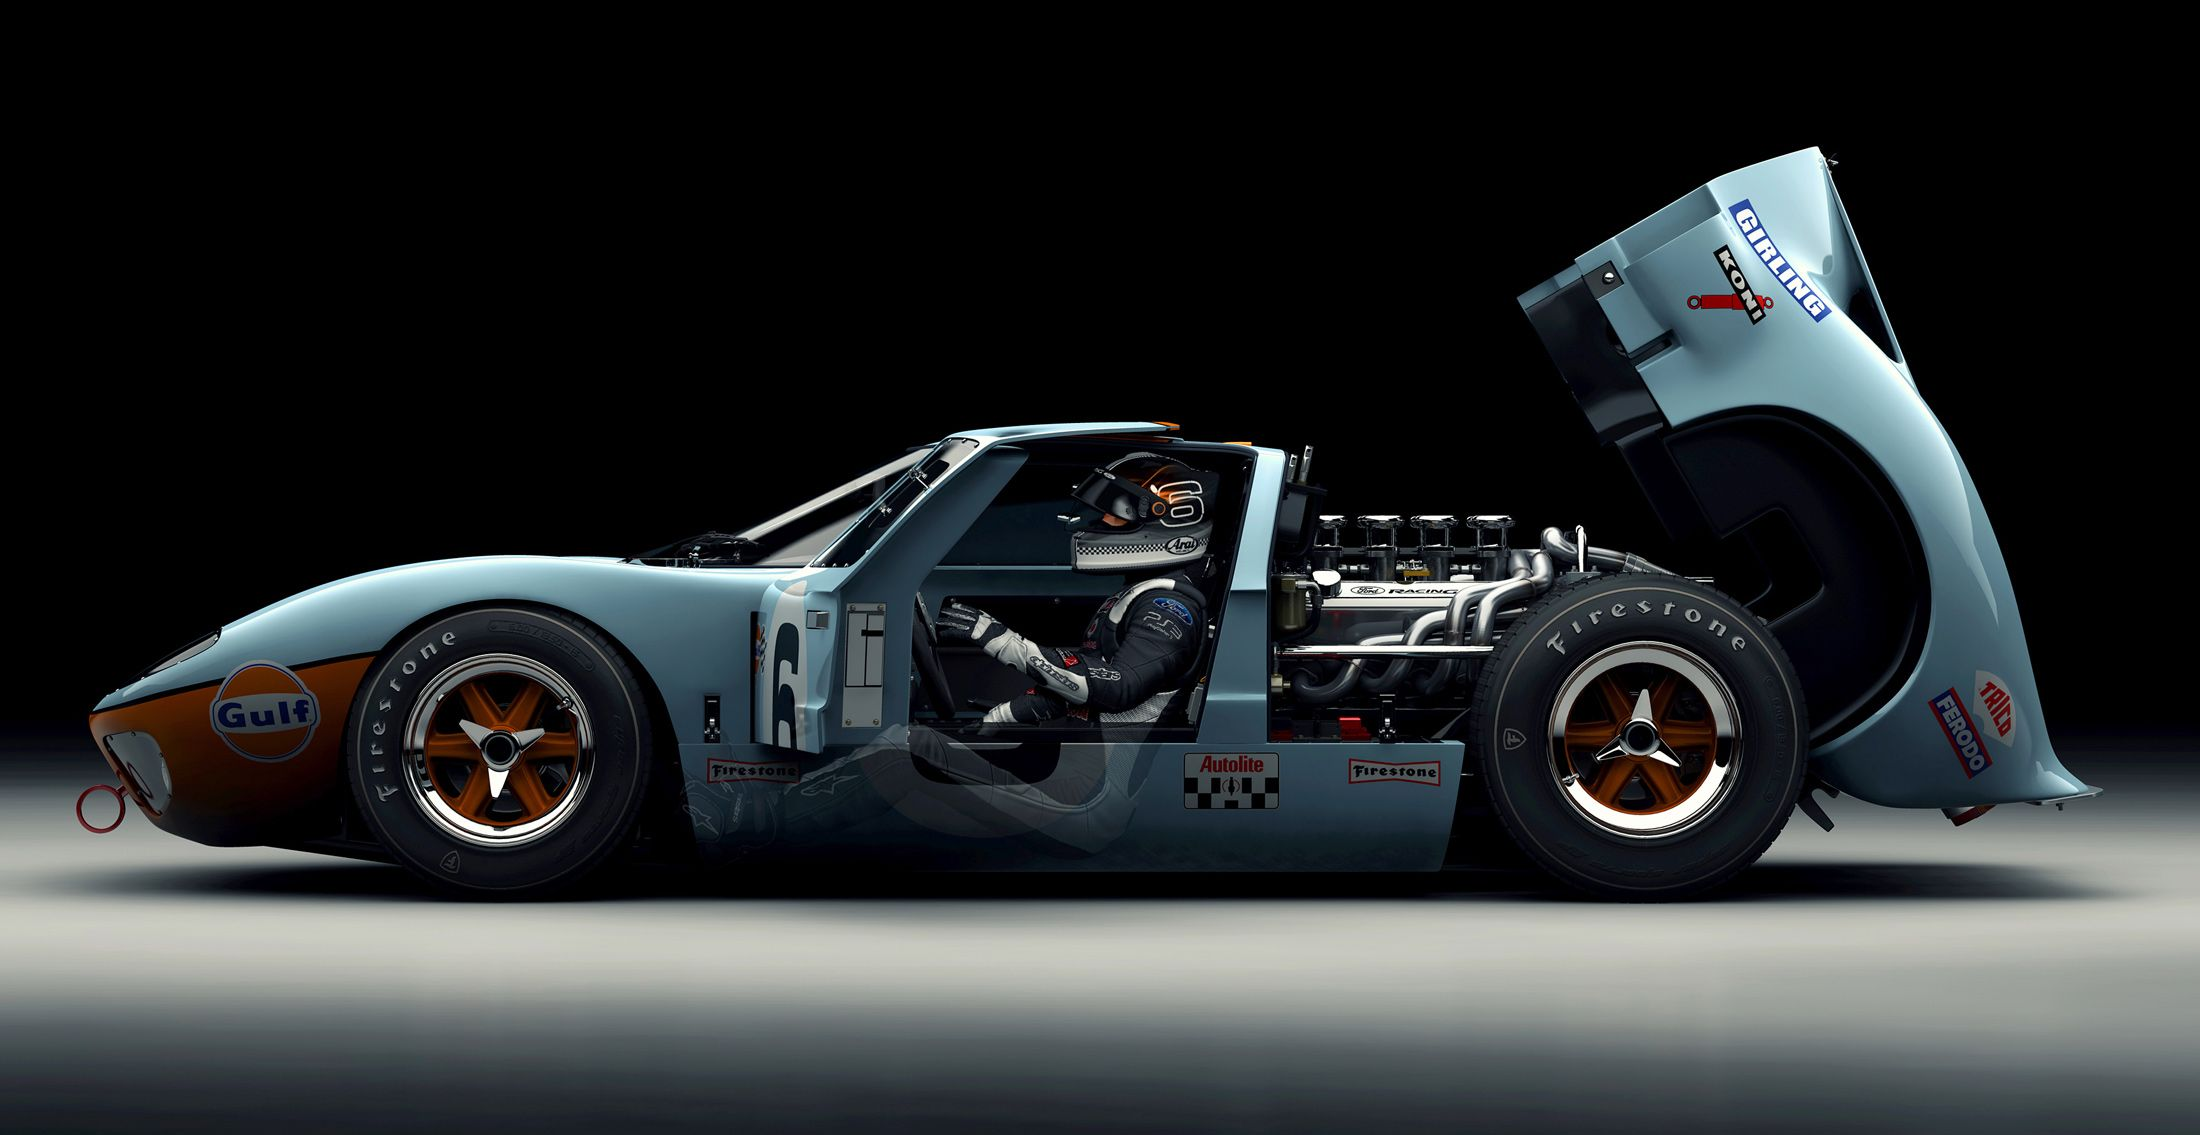 Luis Nieves Race Car Driver | Games Design | Pinterest | Ford gt40